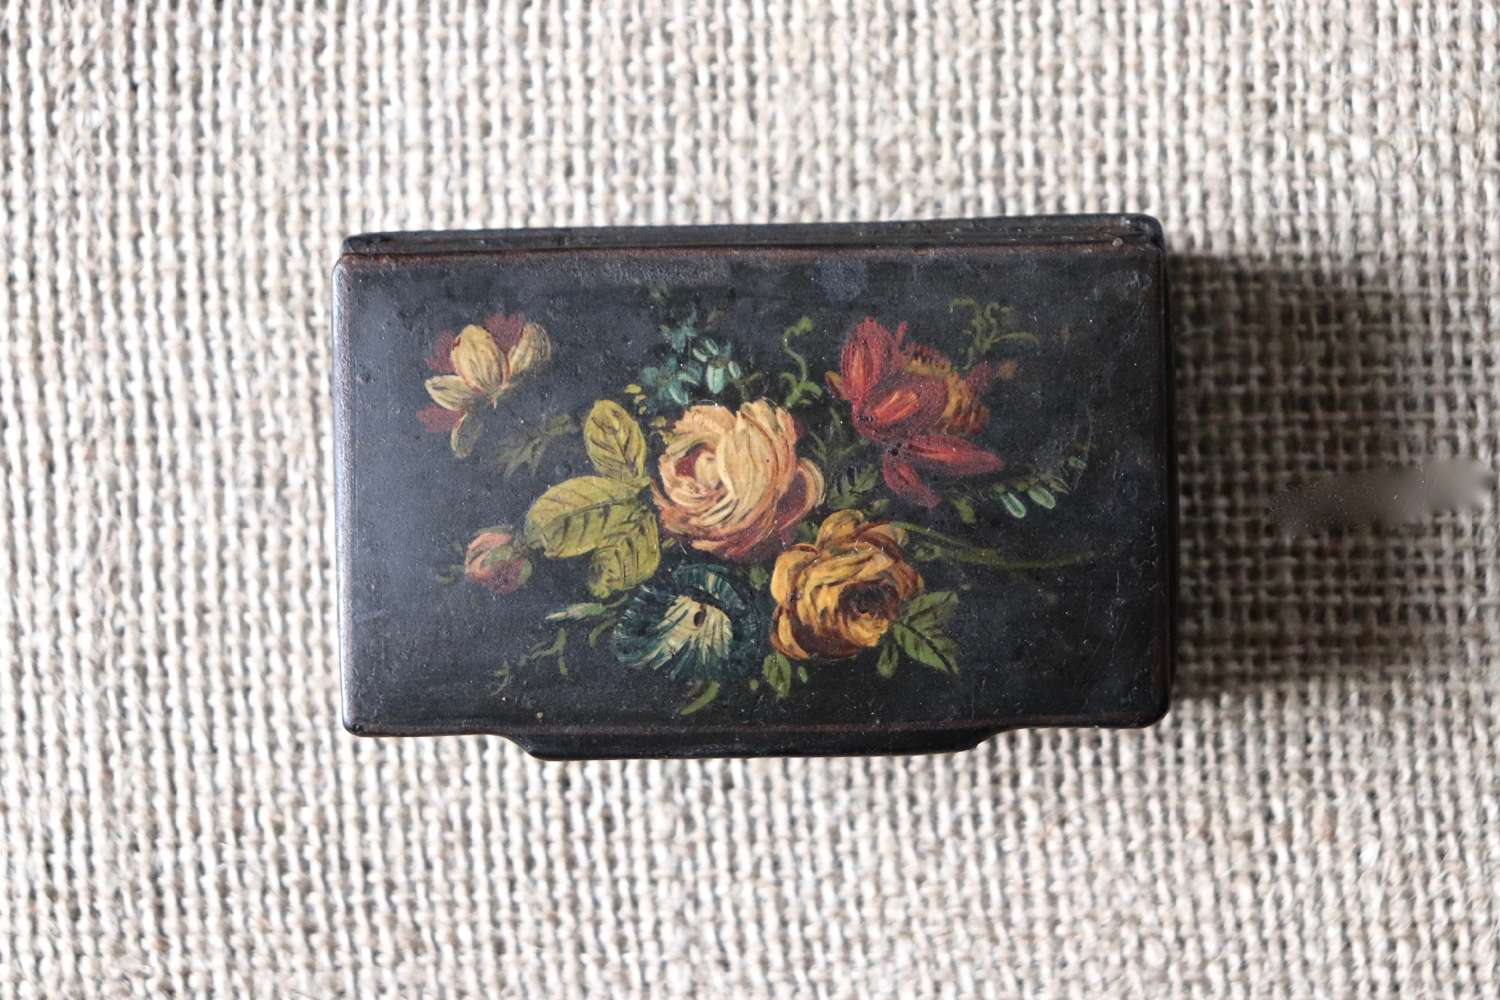 Wooden Victorian snuff box with floral painting